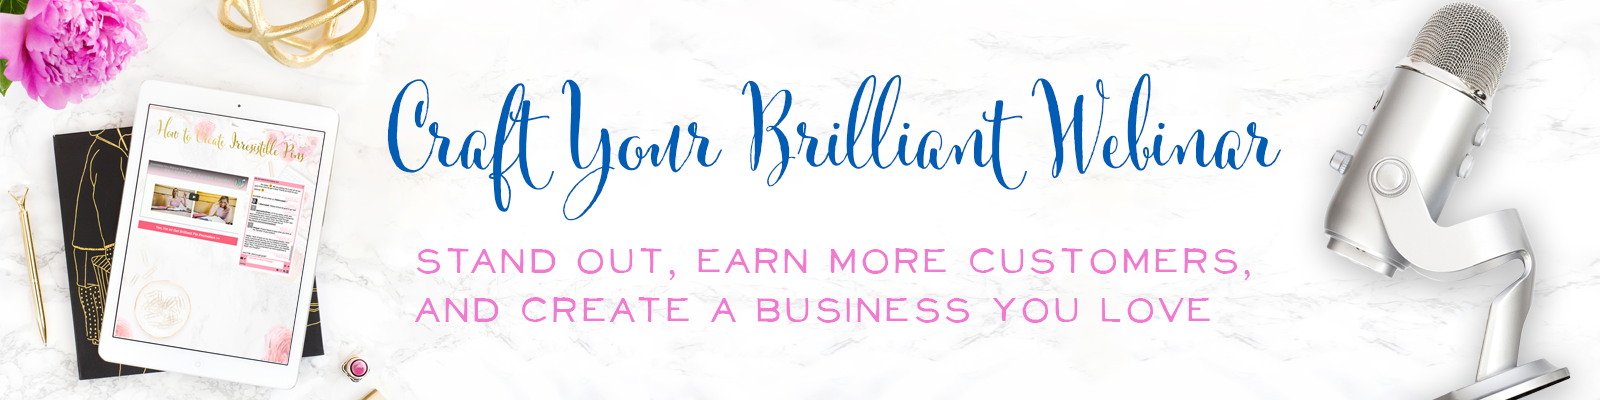 Craft Your Brilliant Webinar - From Scared to Sell to Customers who Love You!